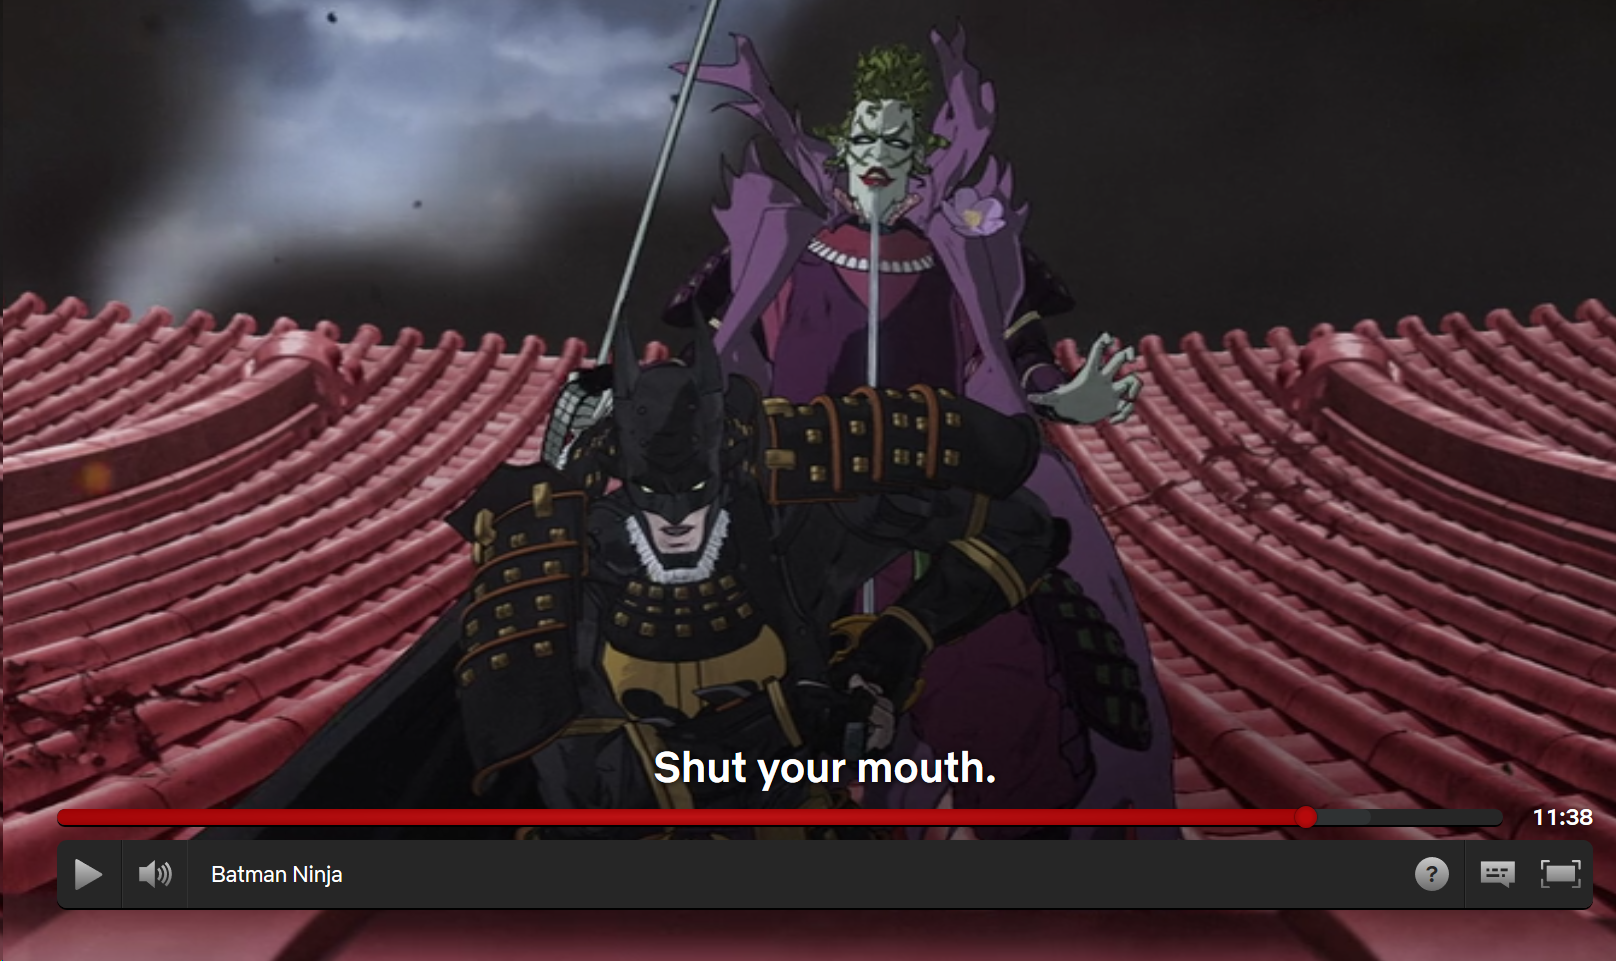 I found out Batman Ninja is on Netflix so I decided to watch. I like the animations, but the story is just plain ridiculous lol